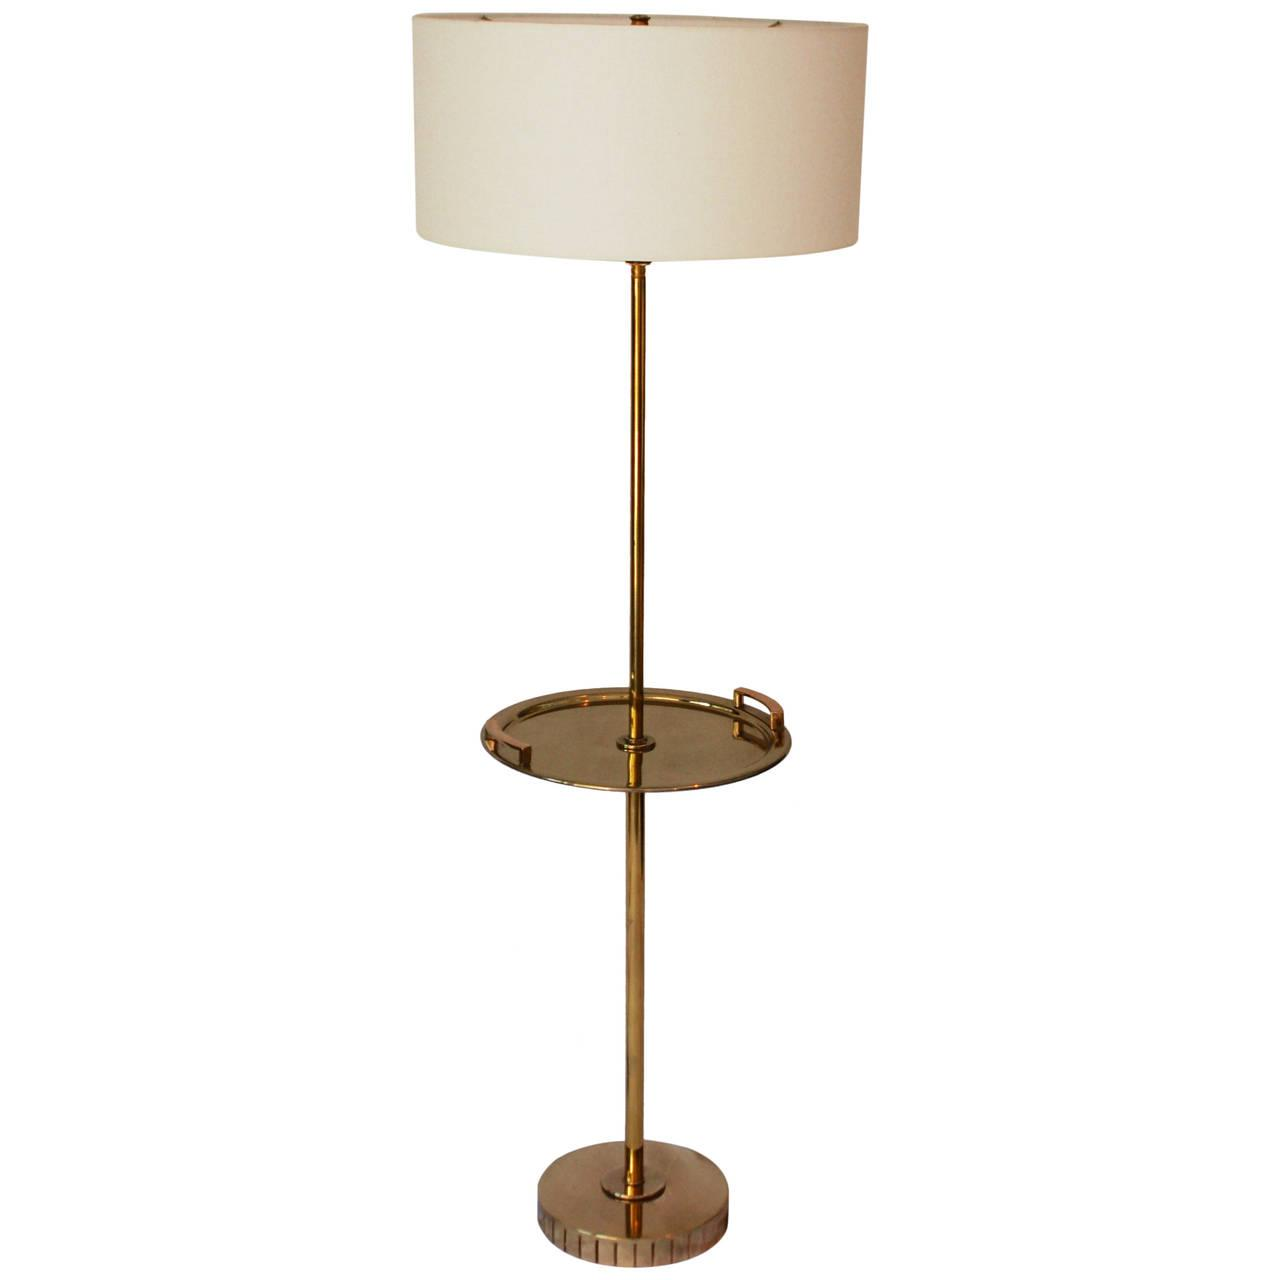 Brass Floor Standing Lamp With Brass Tray Table Chairish